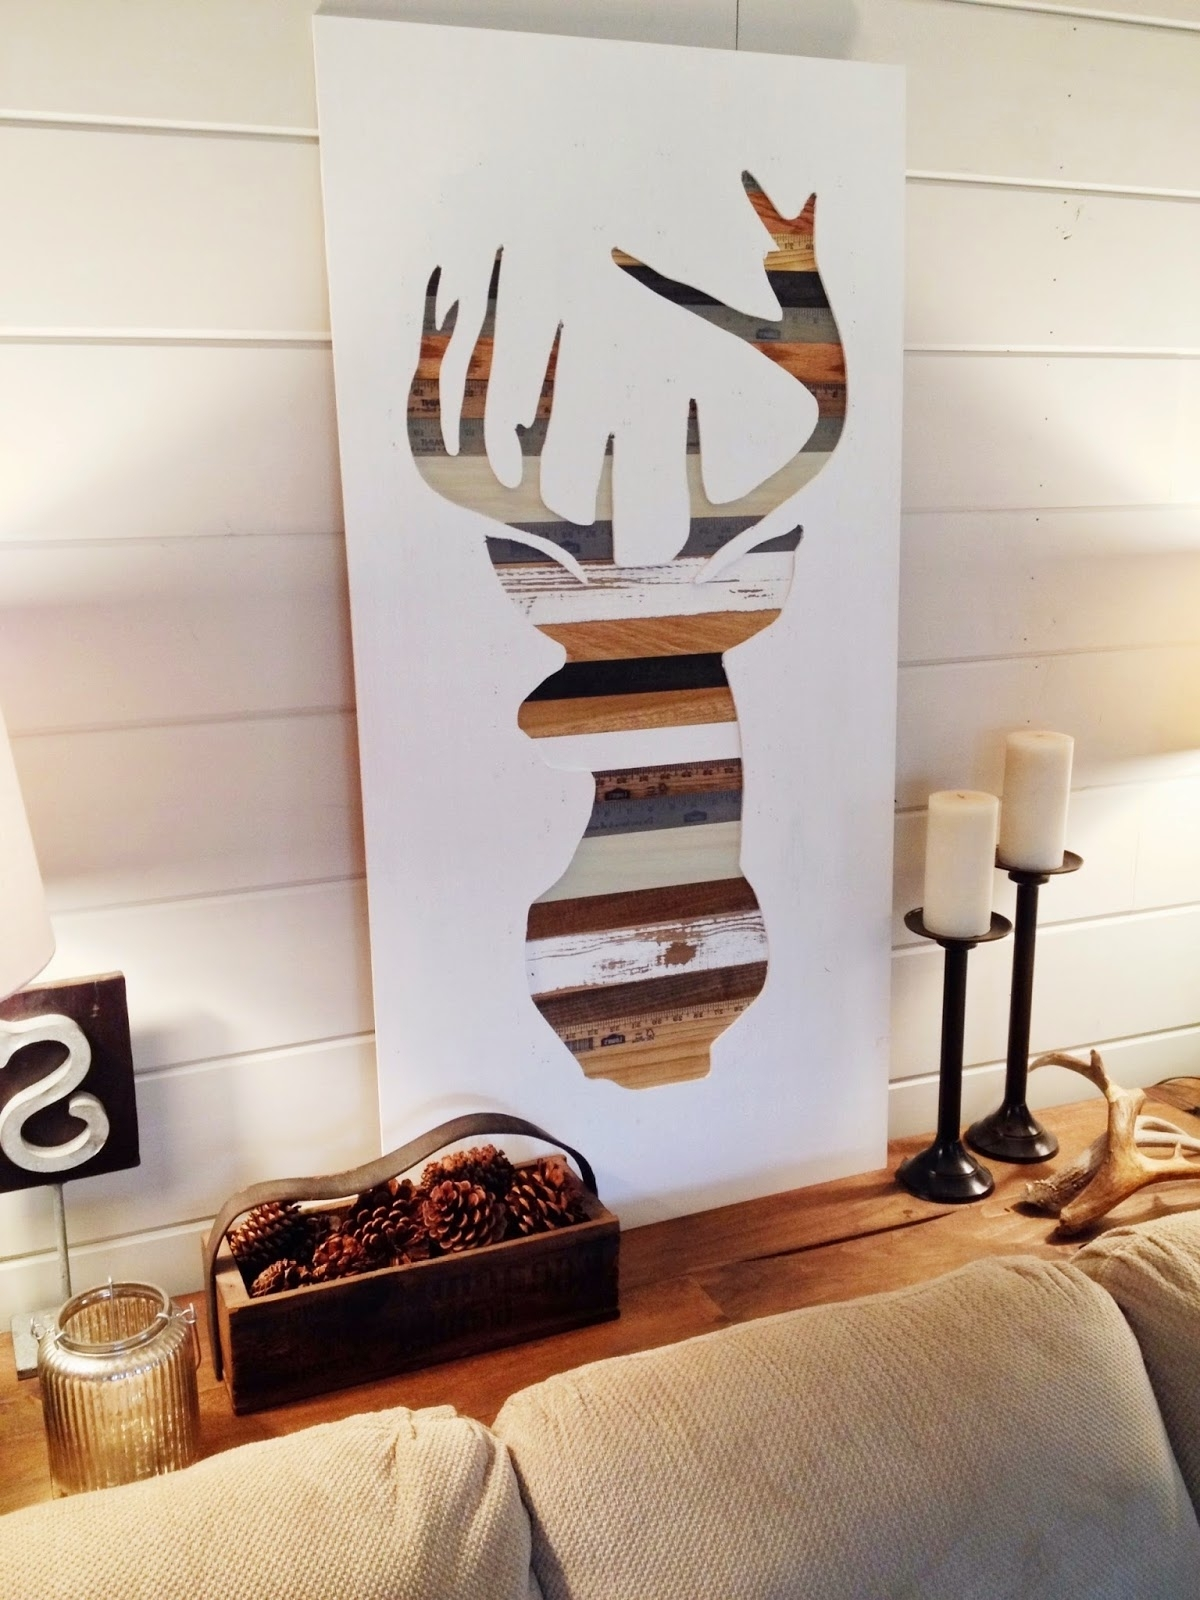 Wood Wall Art Diy Intended For Famous Diy Wood Wall Art Projects – Sand And Sisal (Gallery 15 of 15)